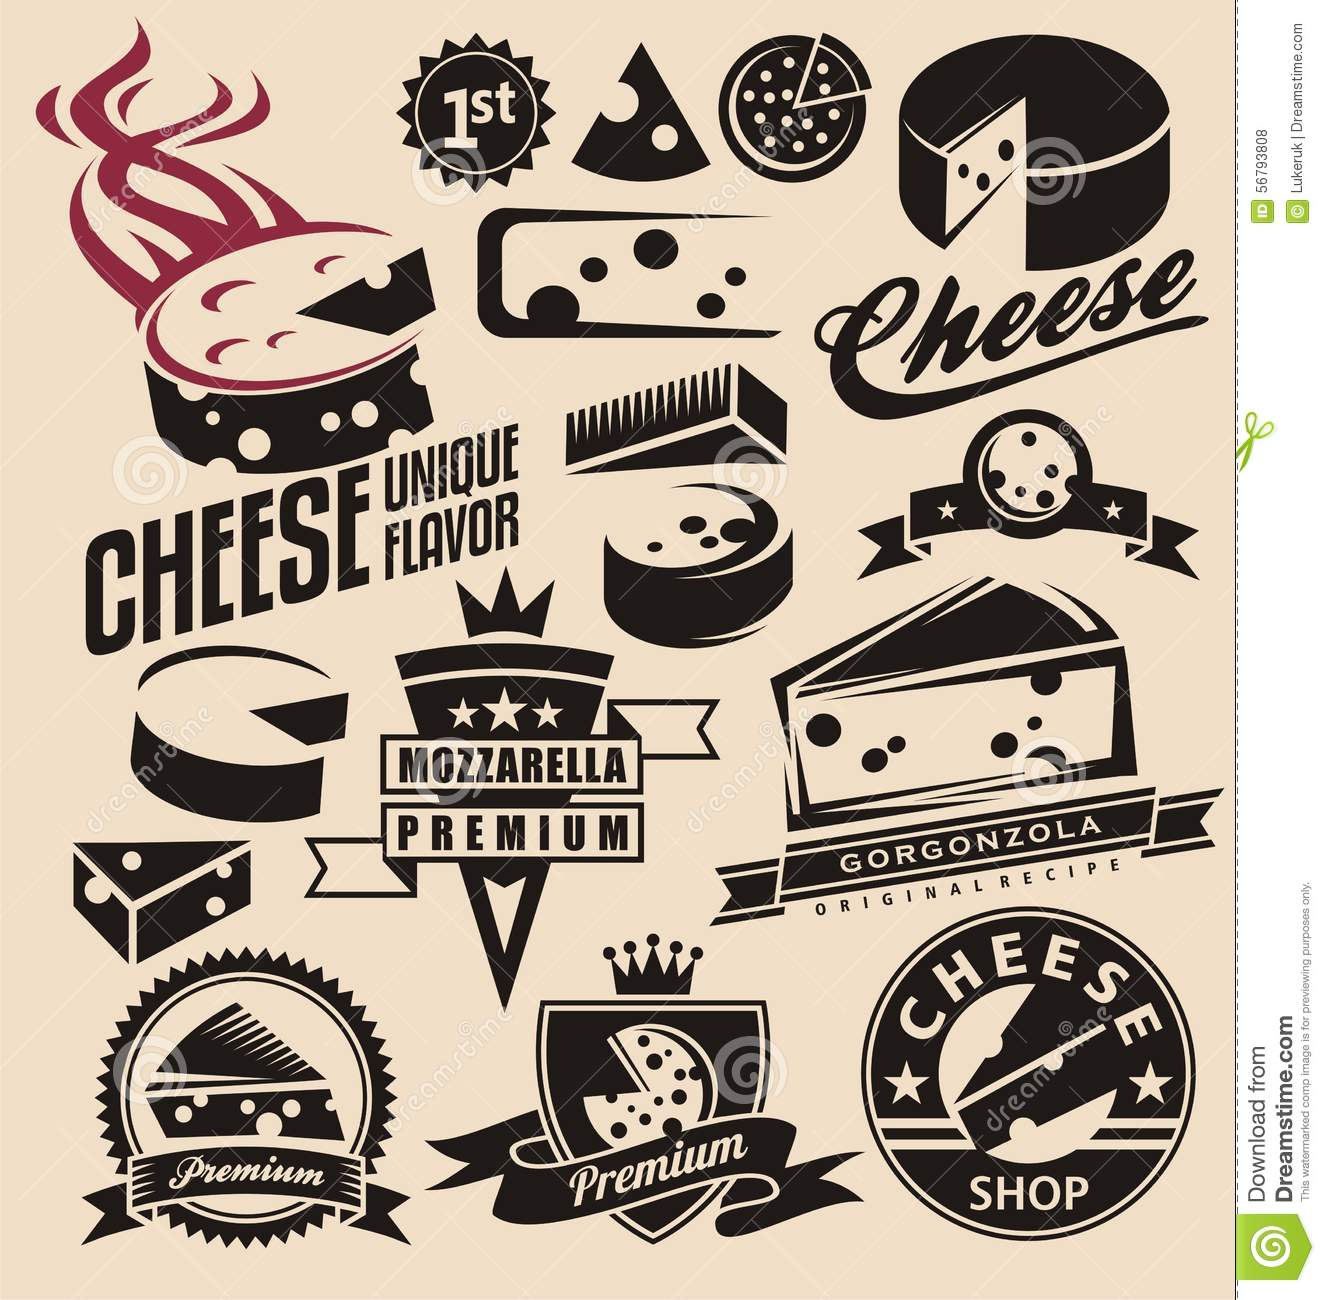 Real cheese logo clipart picture black and white library Cheese Stock Vector - Image: 56793808 picture black and white library